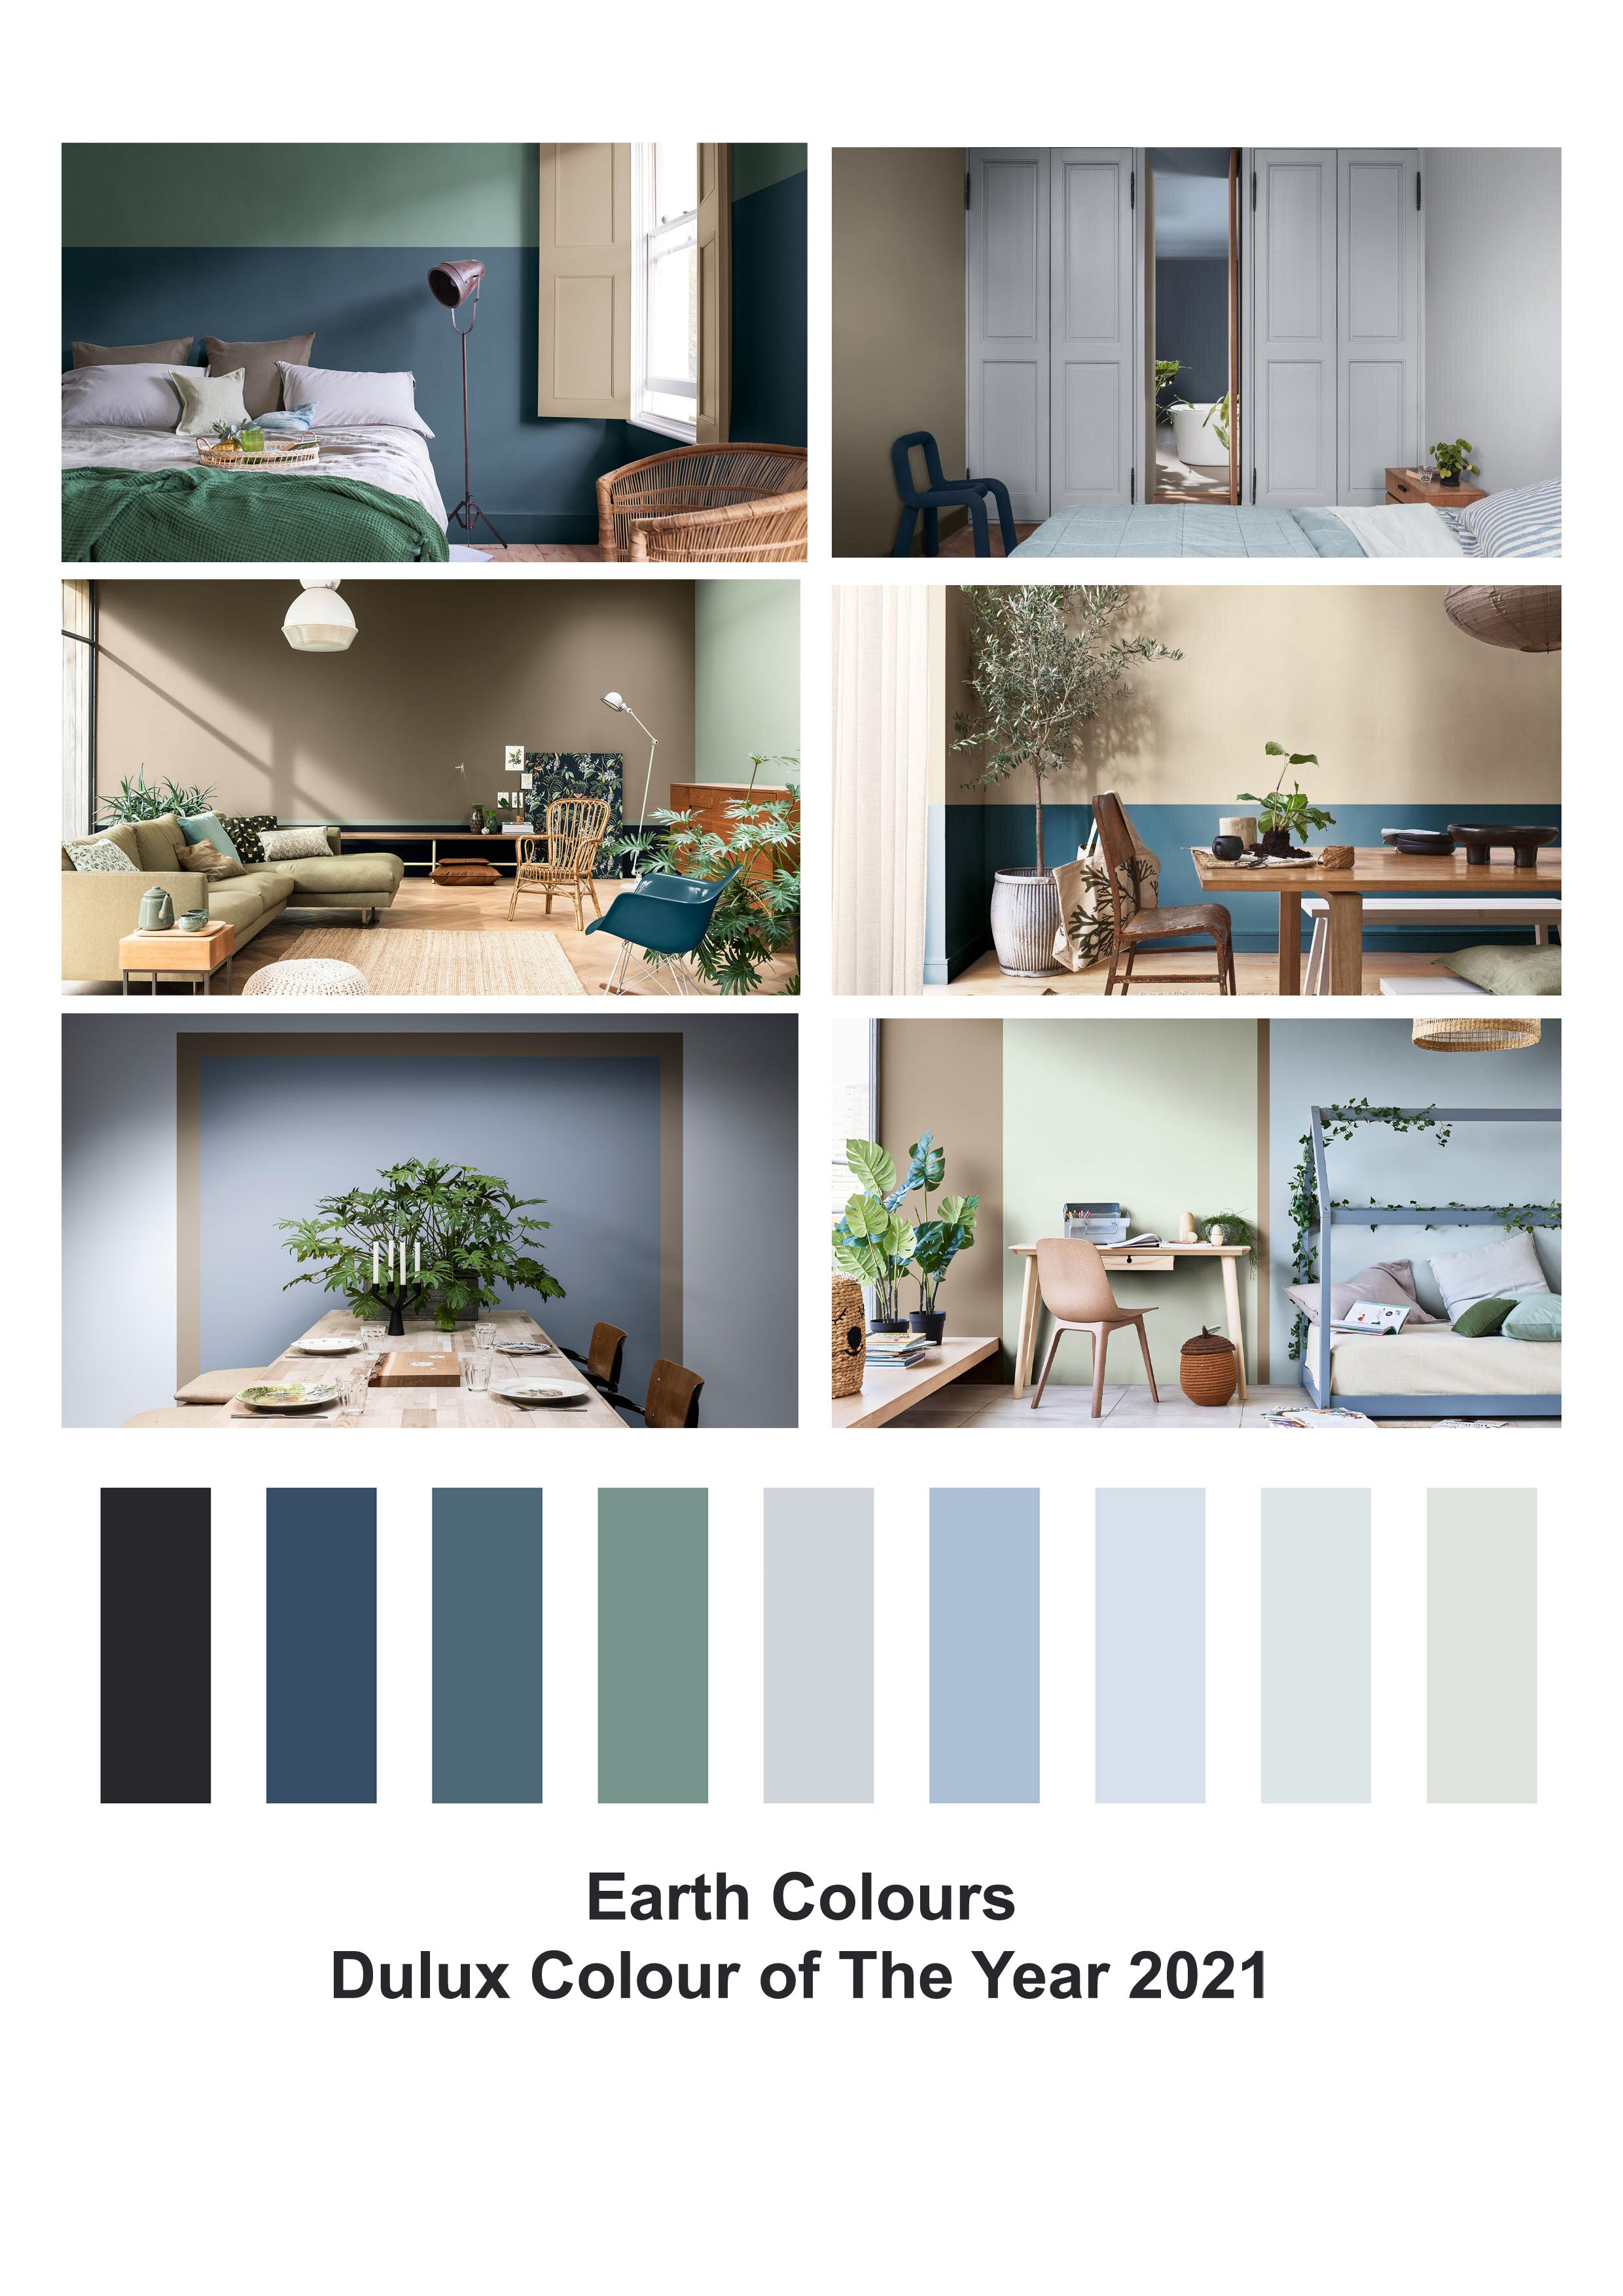 Earth Colours, Dulux Colour of the Year 2021